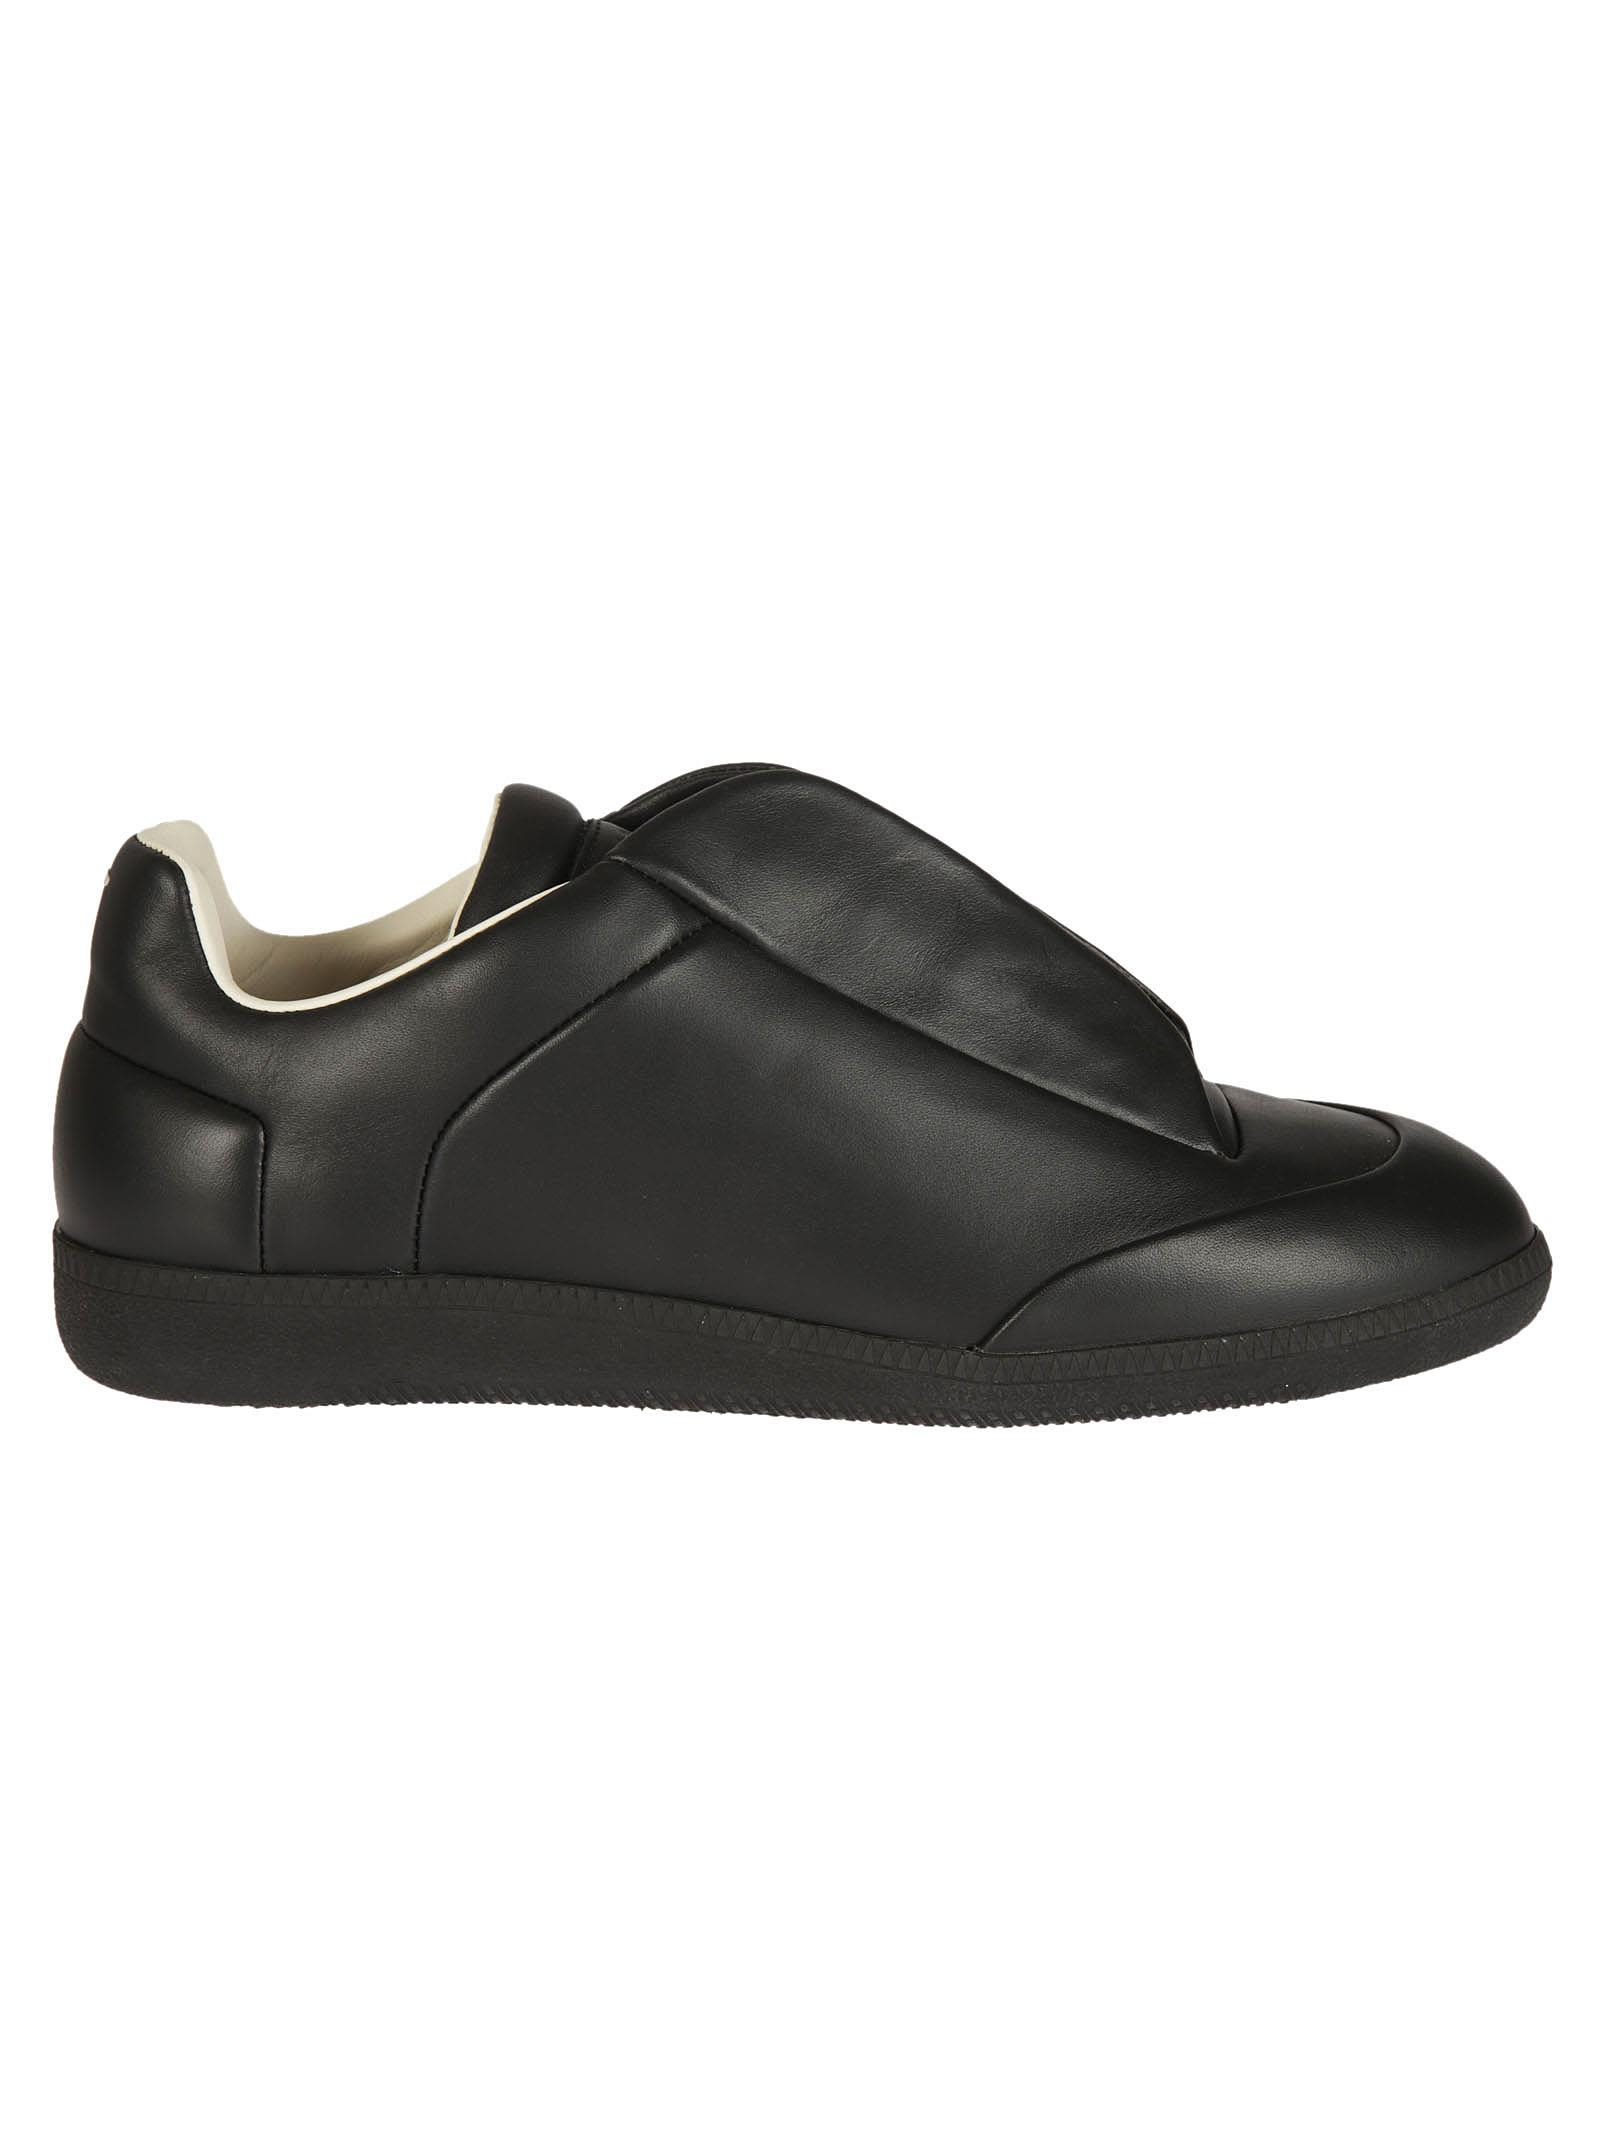 Maison Margiela Foldover Top Sneakers